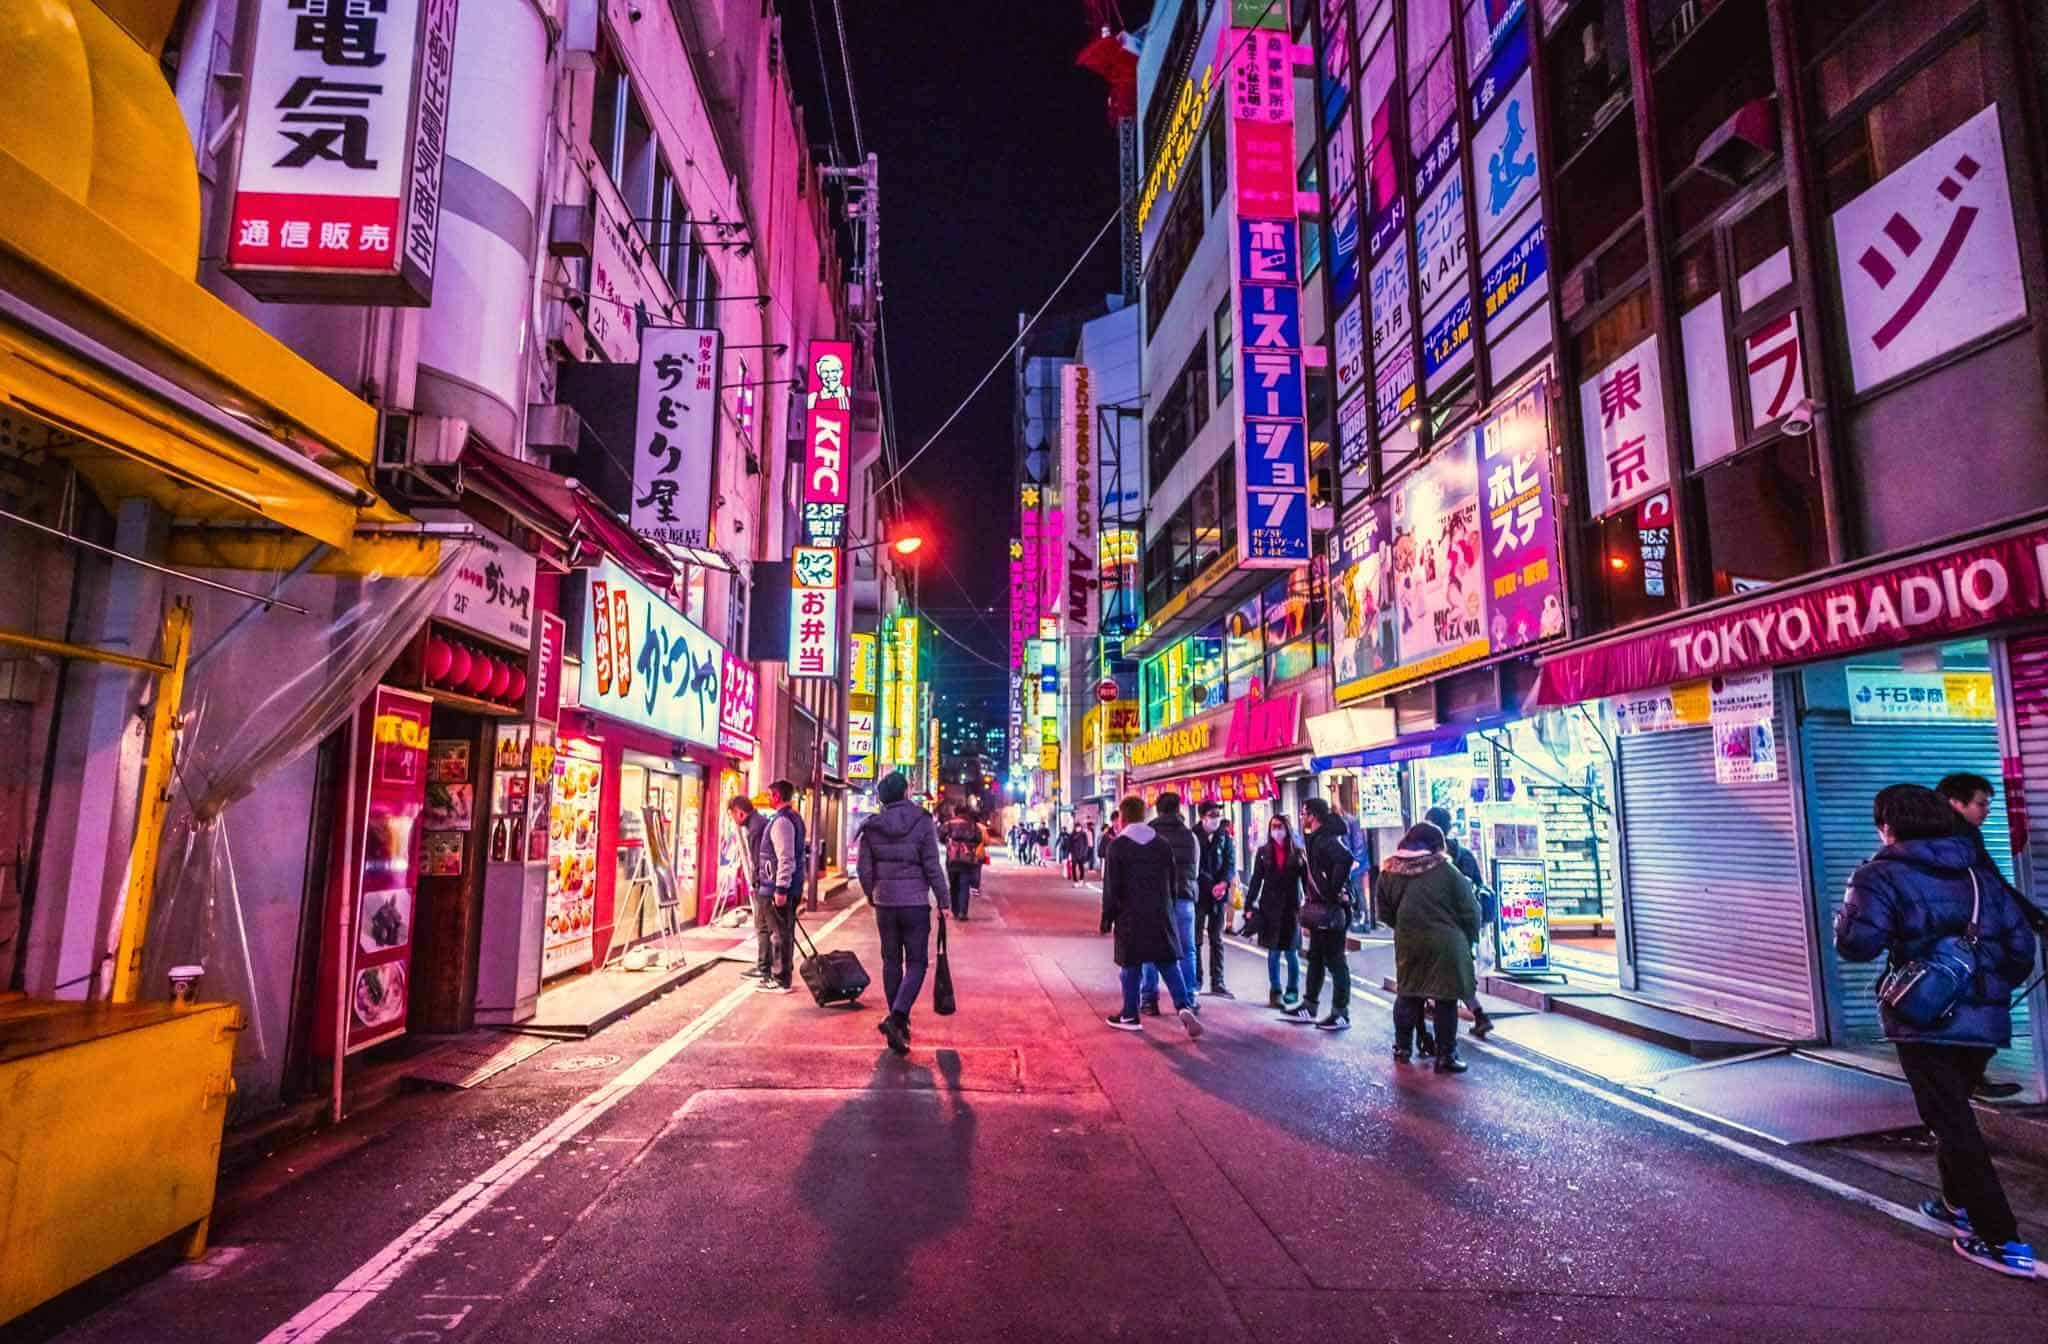 Places to eat in Tokyo